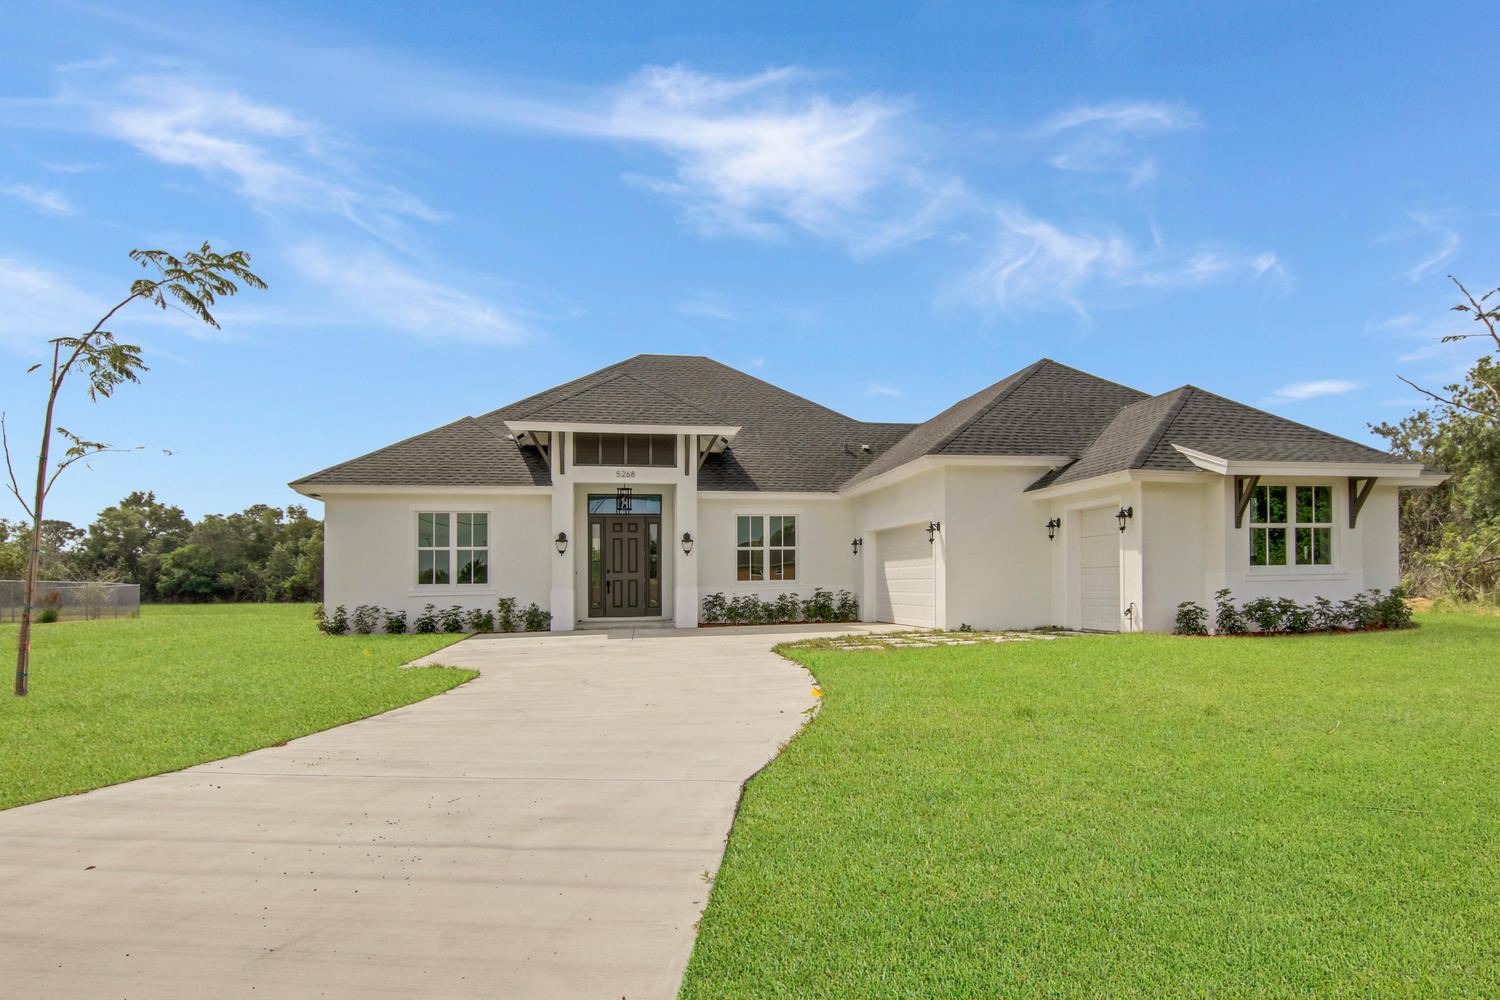 Photo of 5268 NW Gamma Street, Port Saint Lucie, FL 34953